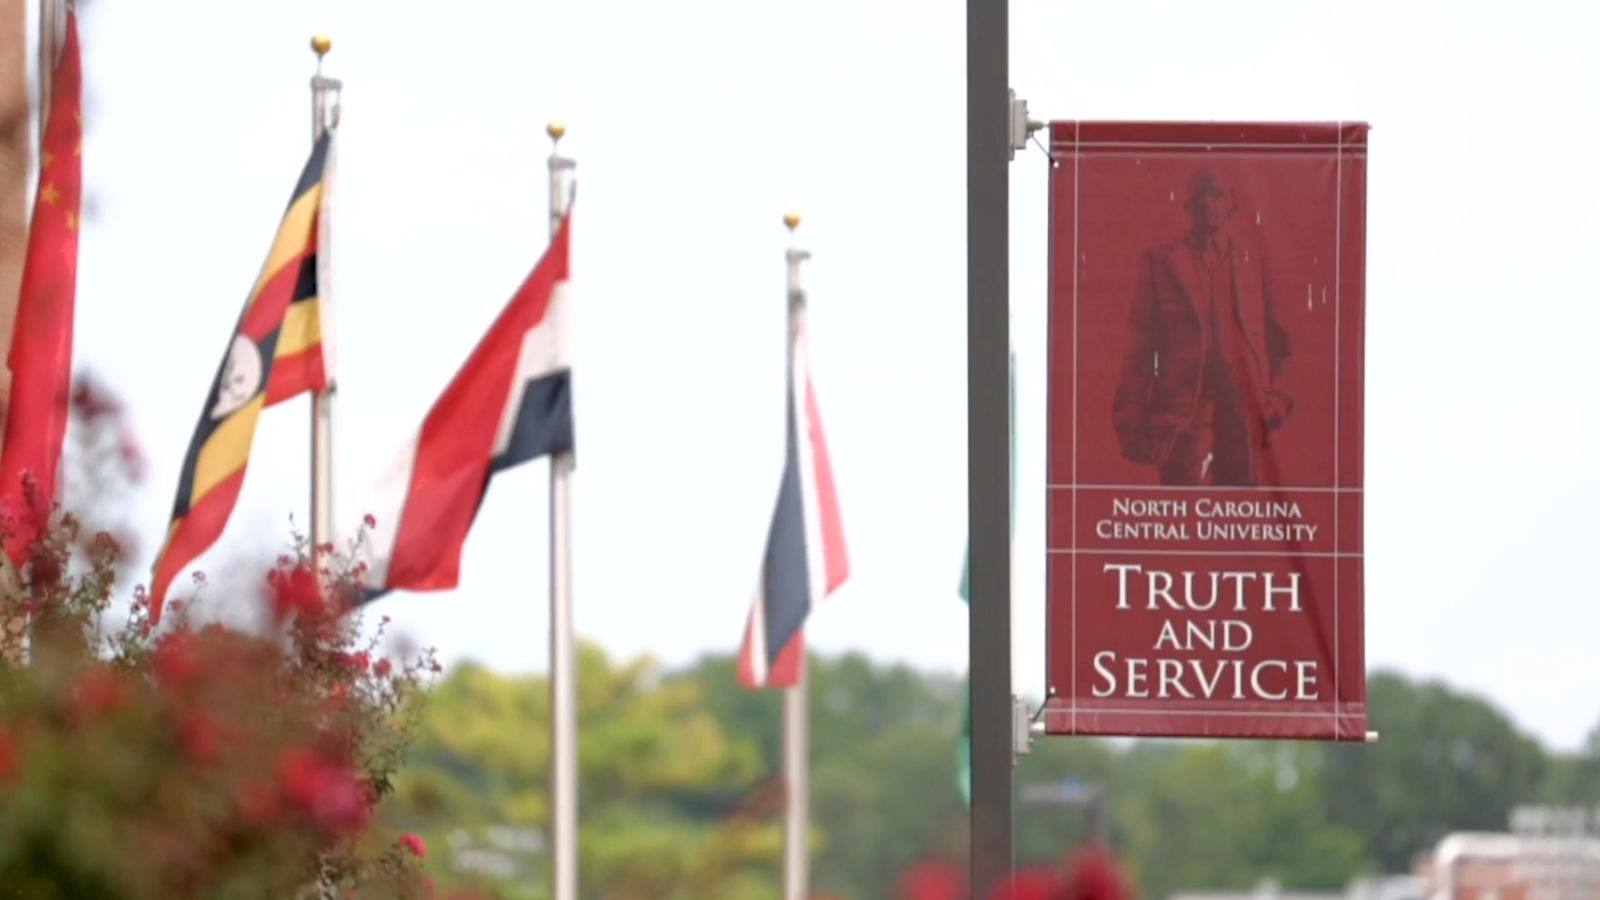 In Truth and Service Banner